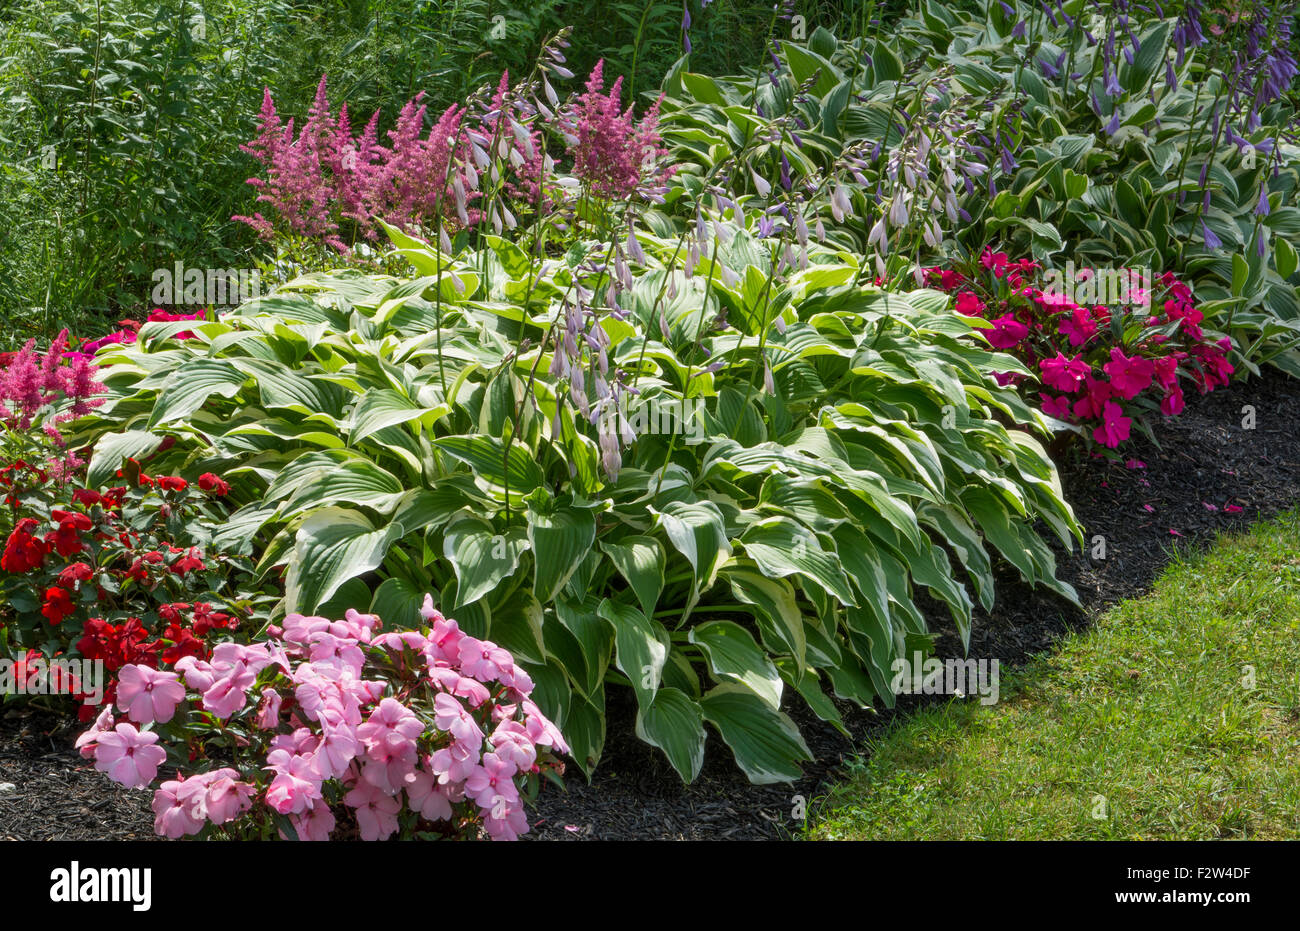 Bar Harbor Maine Colorful Flower Gardens In Yard Of Home In Summer